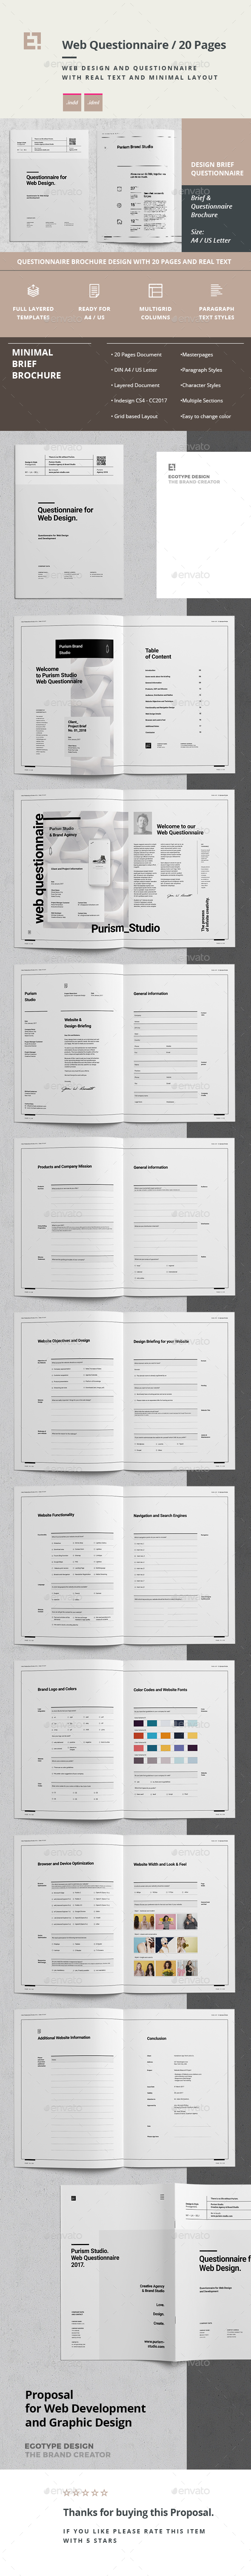 Questionnaire Graphics, Designs & Templates from GraphicRiver